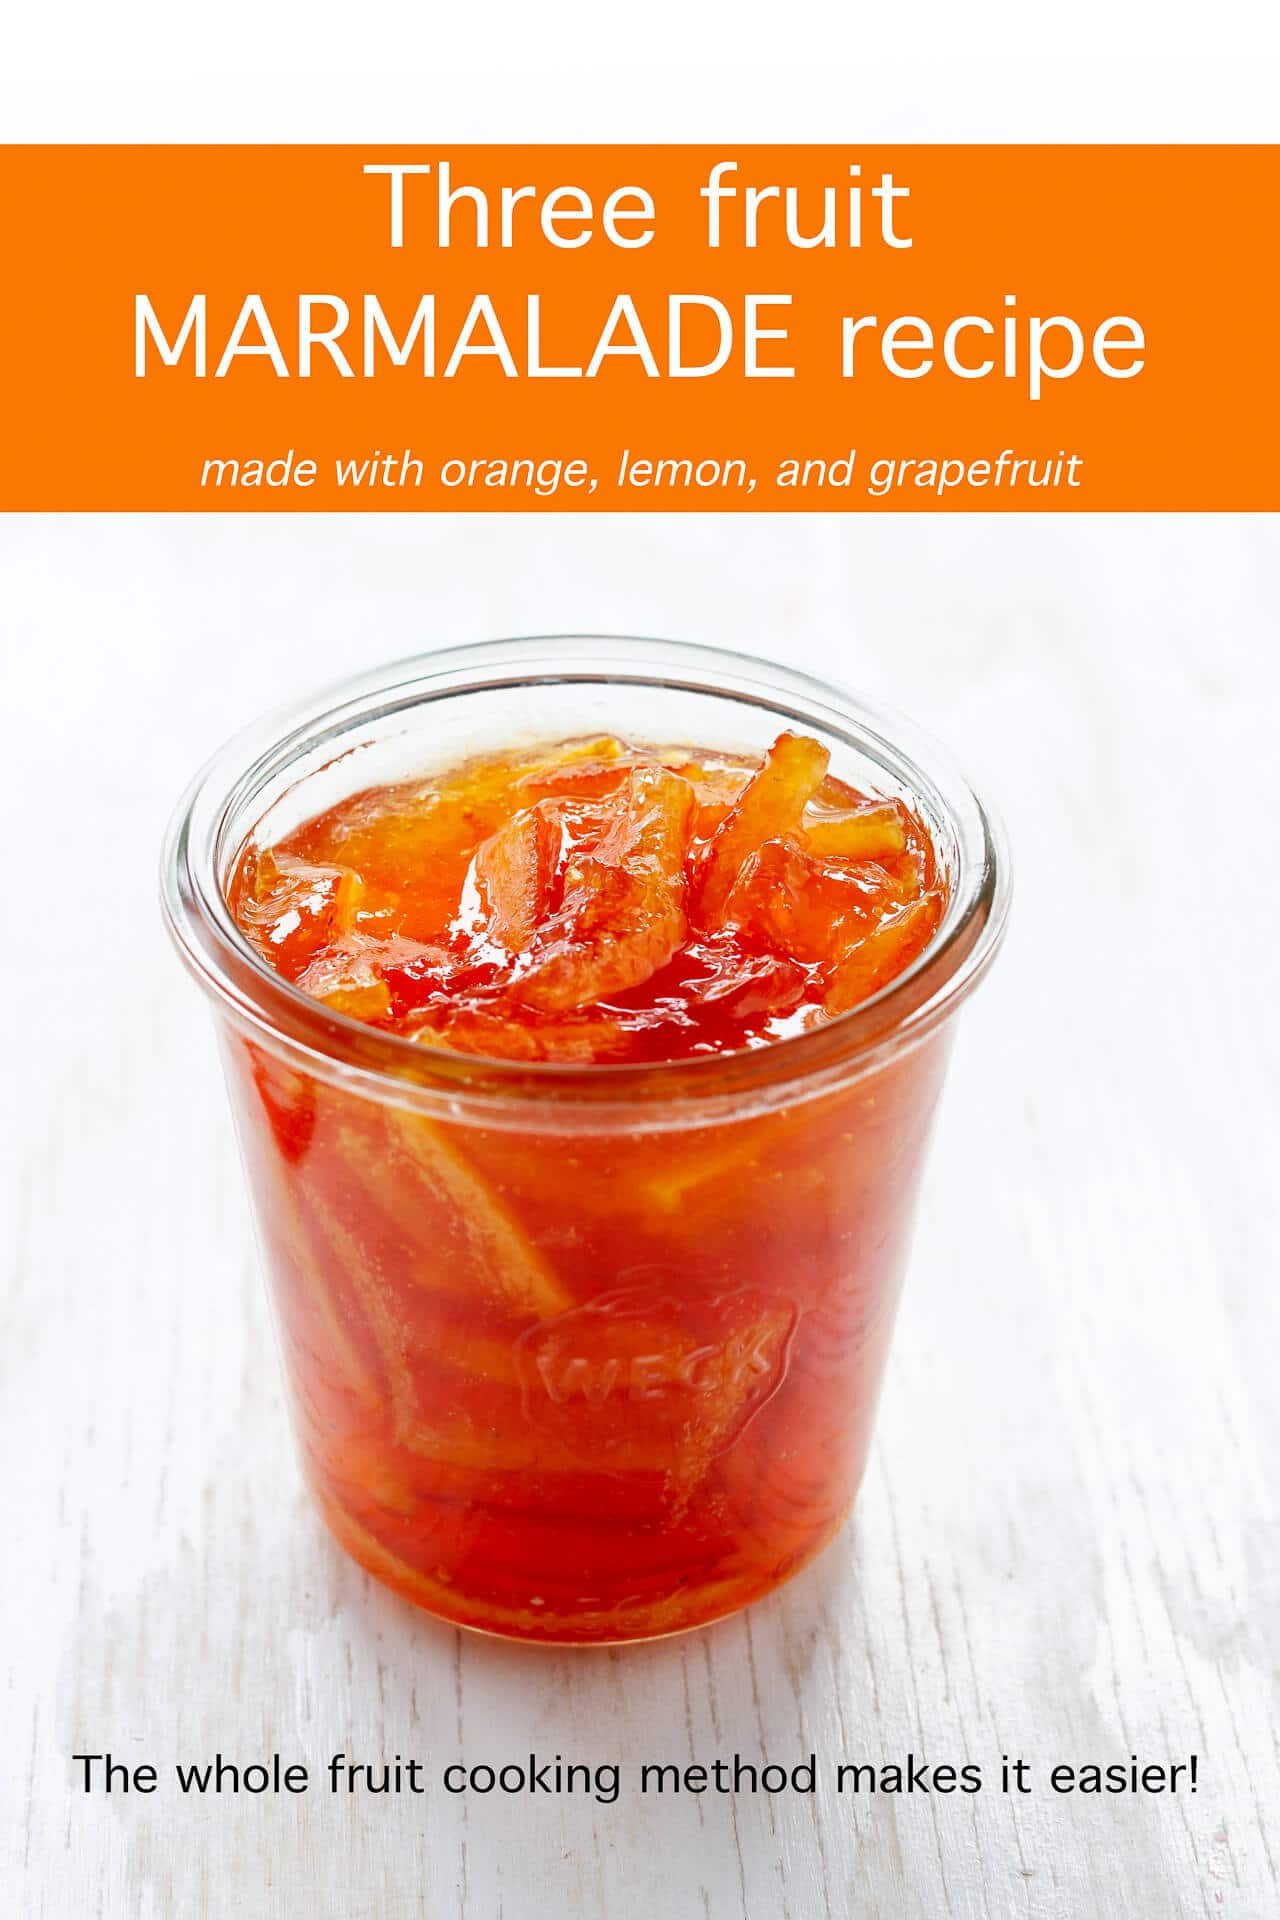 A glass Weck jar filled with lemon orange grapefruit marmalade (3 fruit marmalade) very